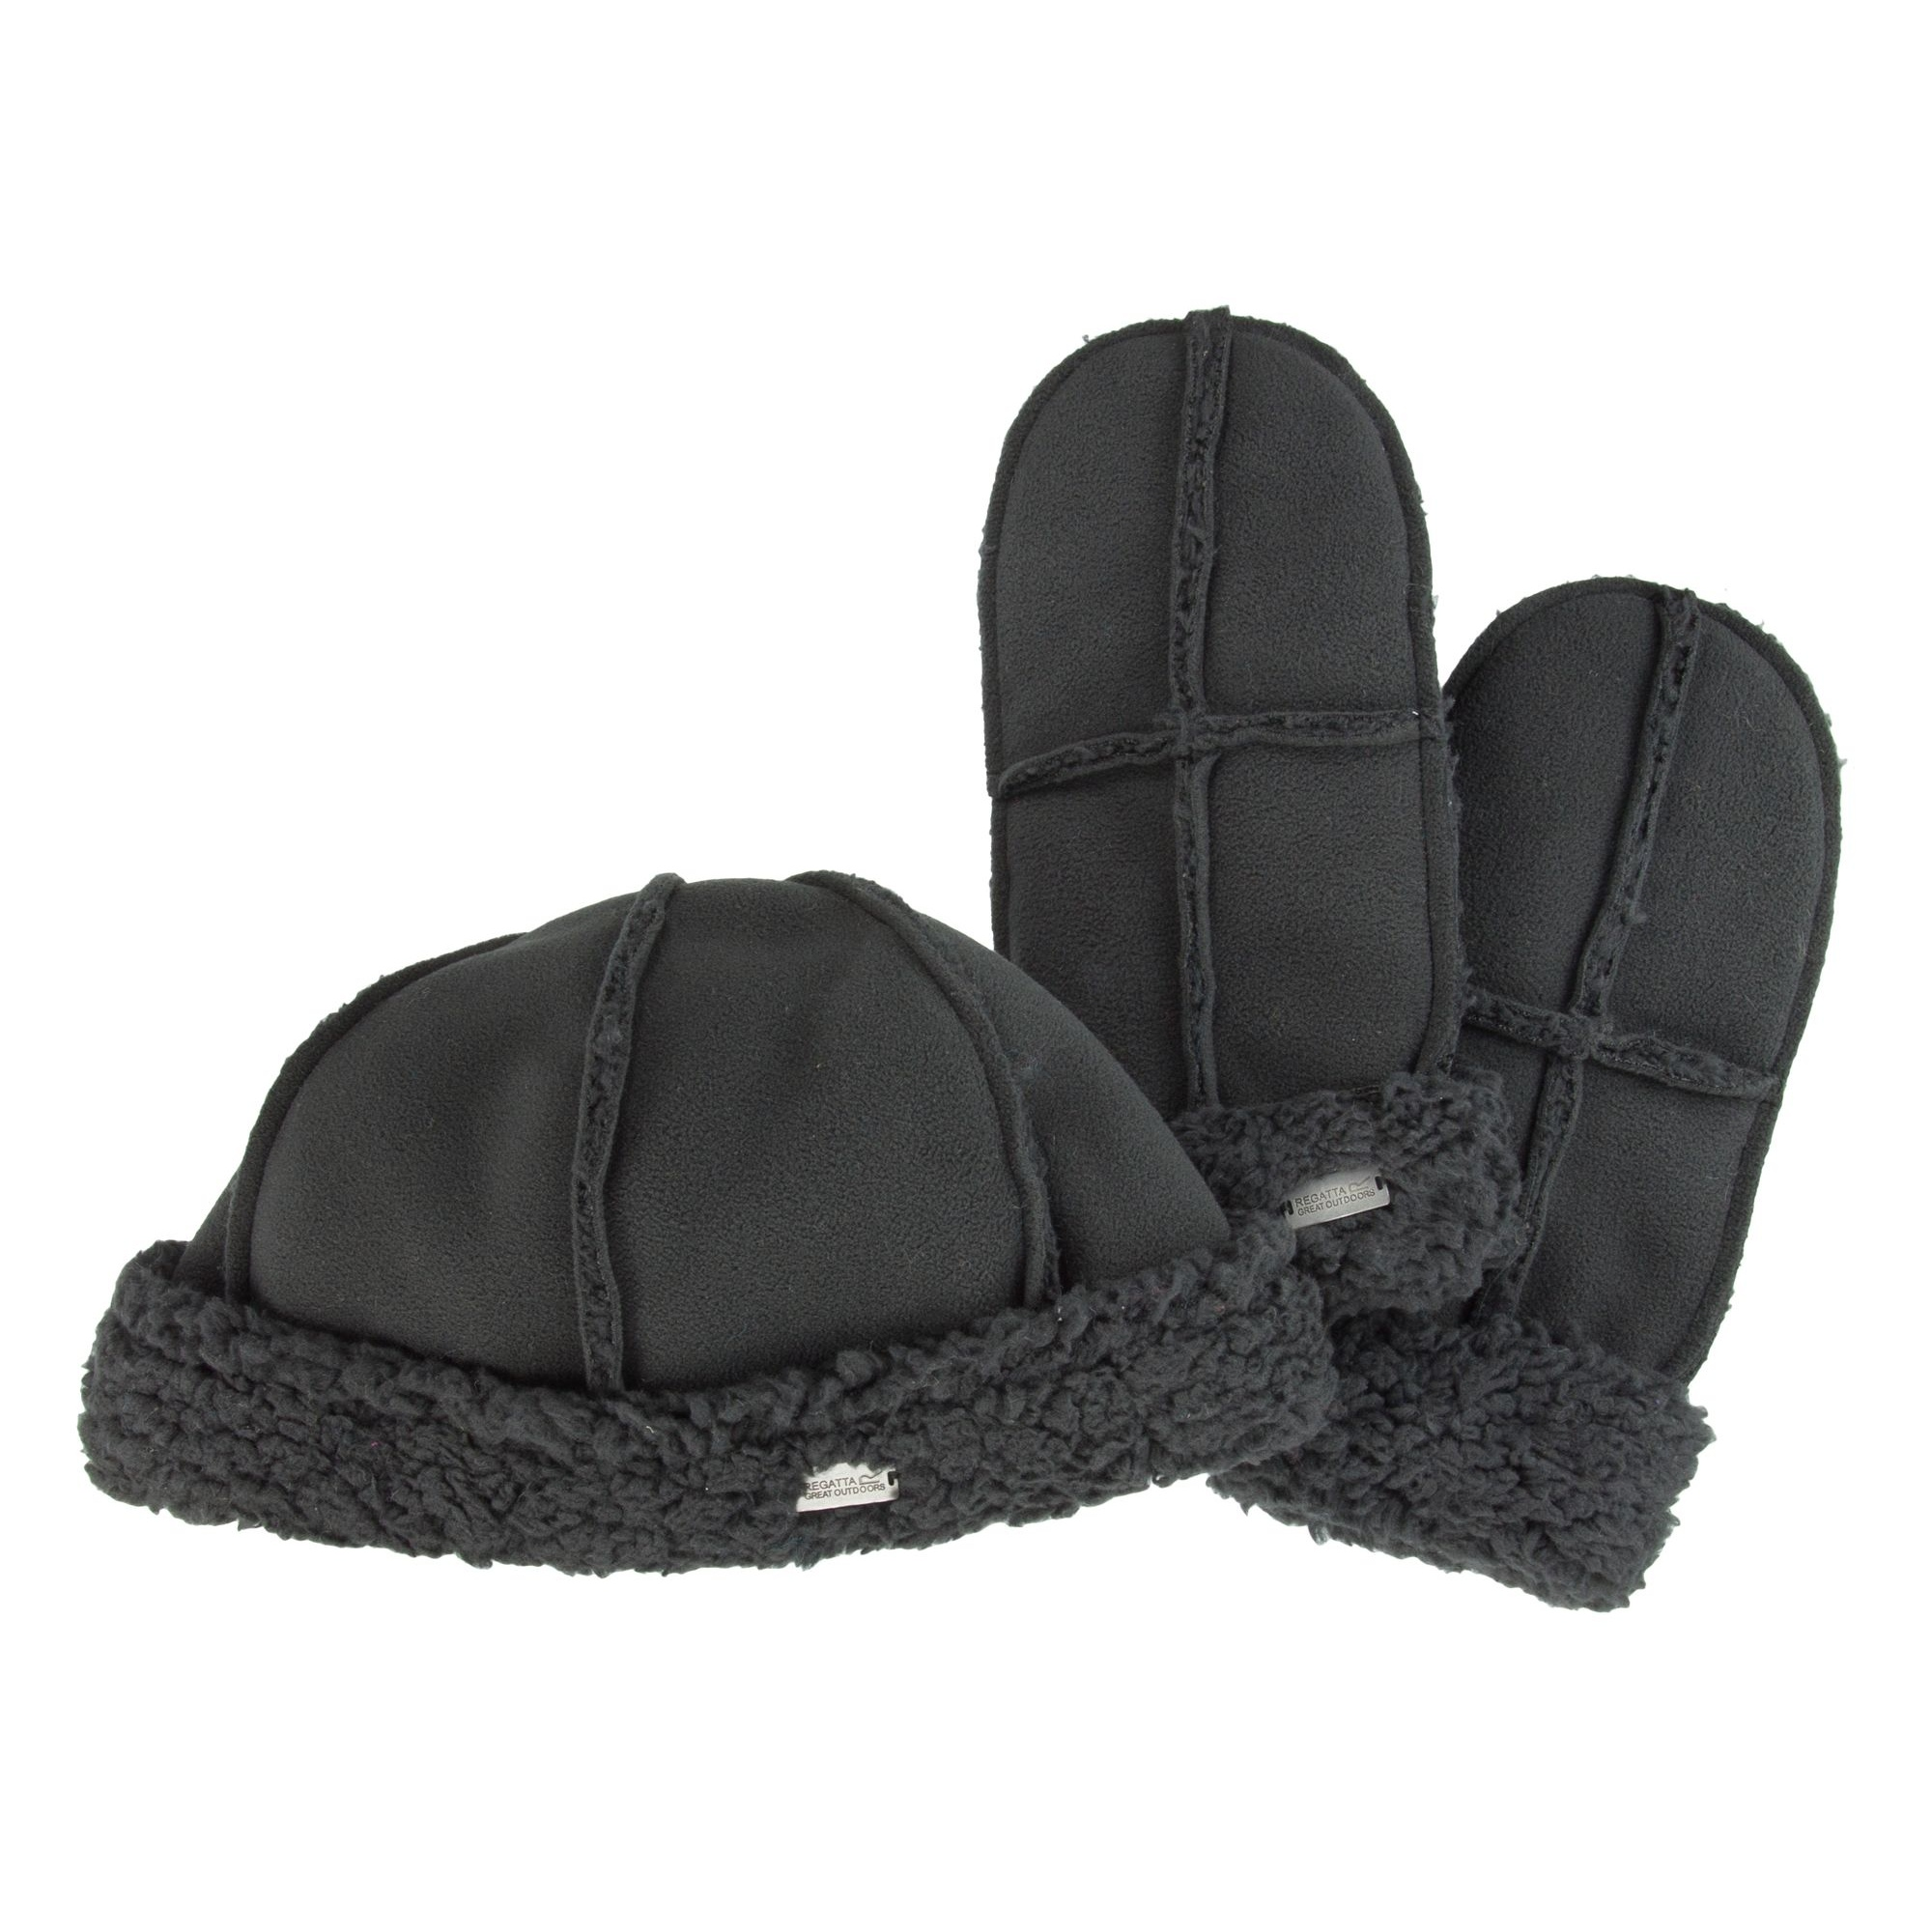 regatta great outdoors womens cozy hat and glove